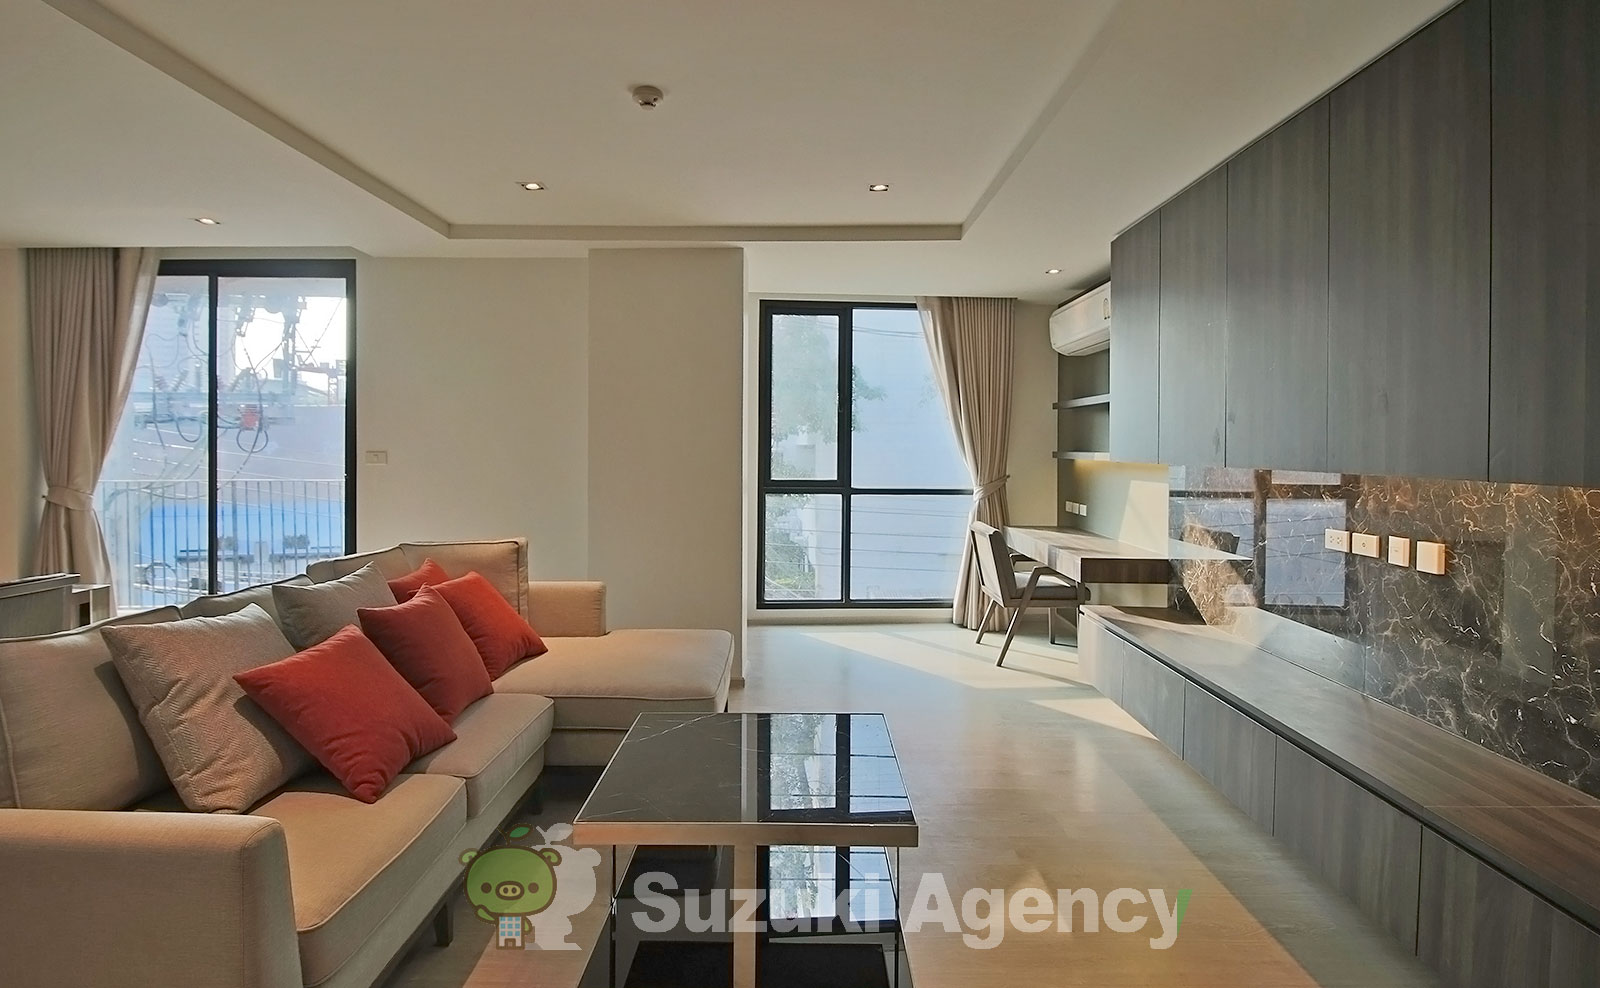 NS Residence Sukhumvit 49:2Bed Room Photos No.1